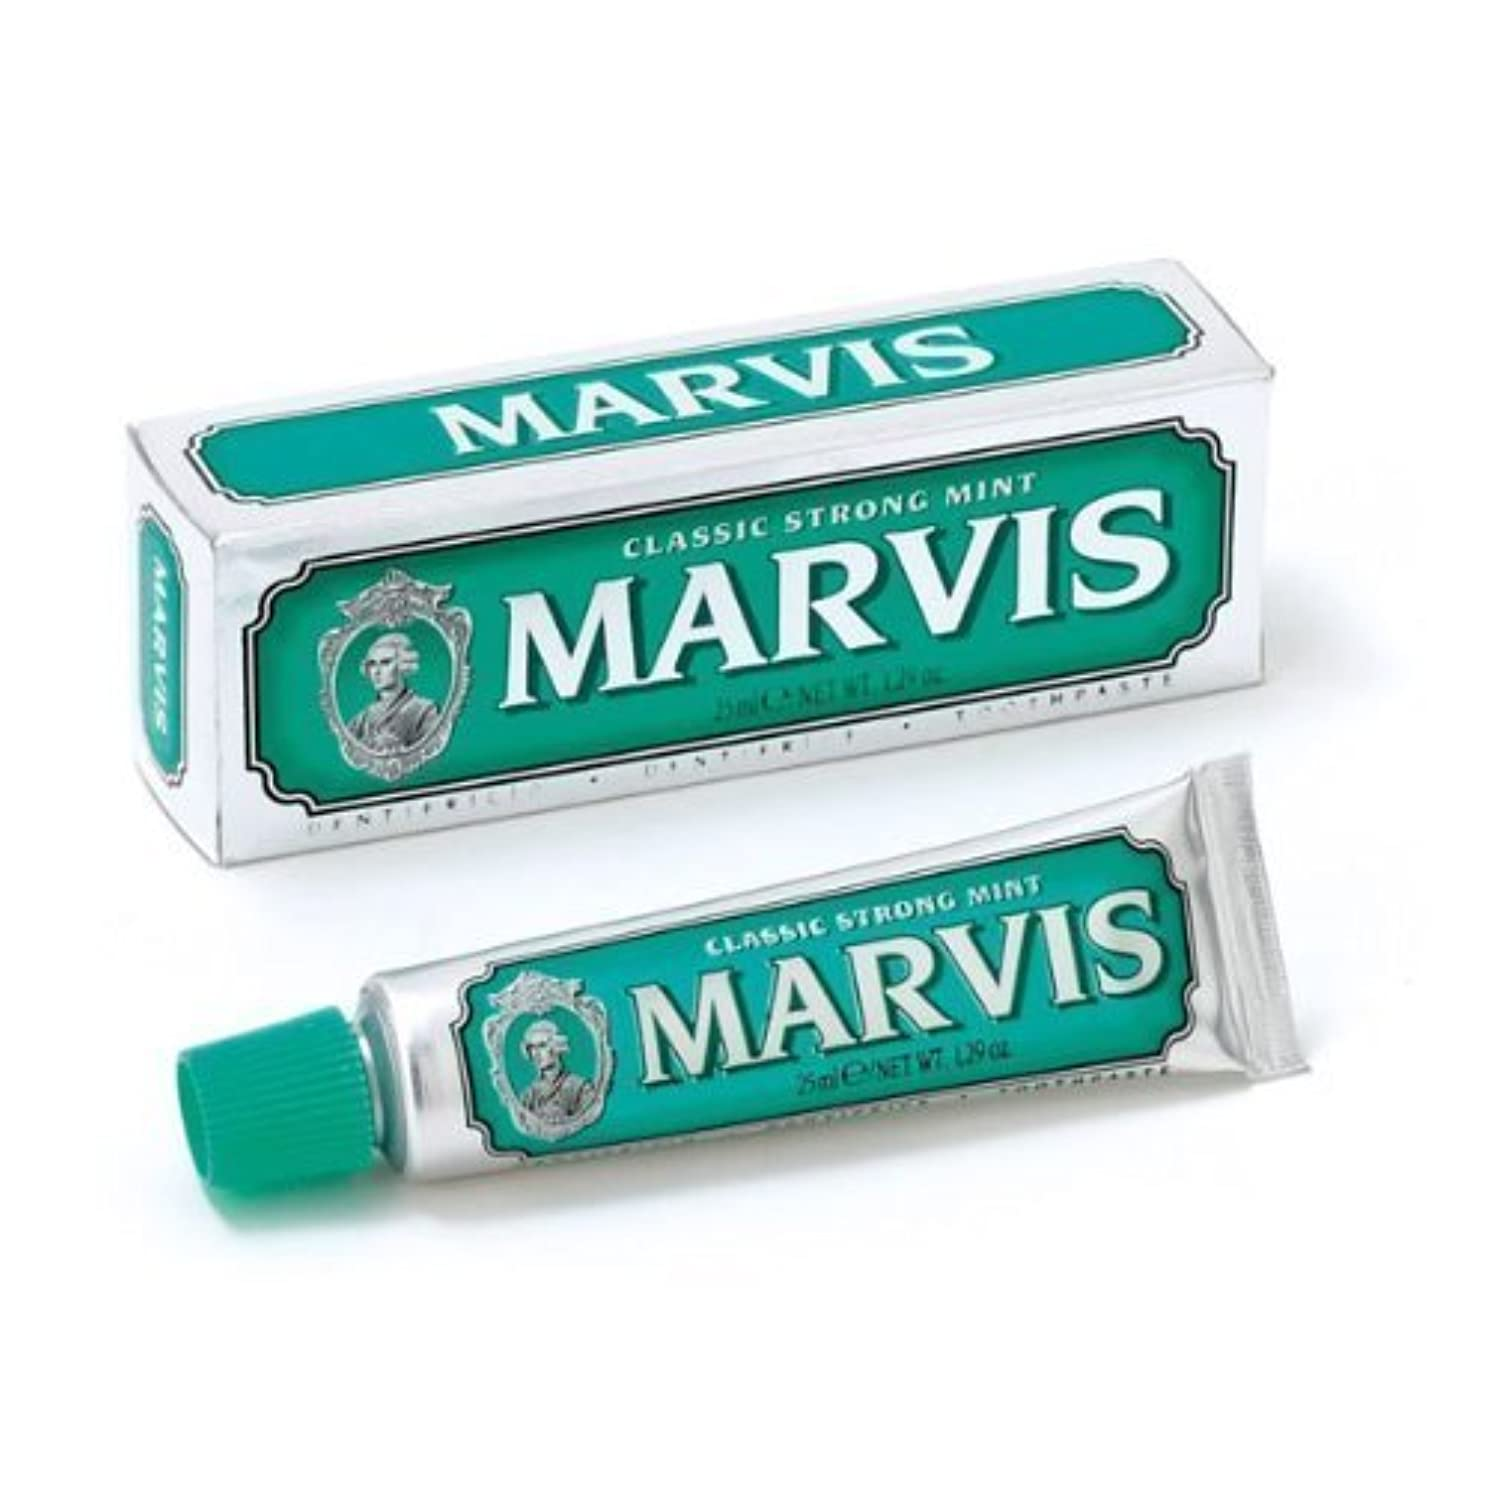 配管工デイジー教育学Marvis Toothpaste - Classic Strong Mint 25ml Travel Size - 4 PACK by Marvis [並行輸入品]